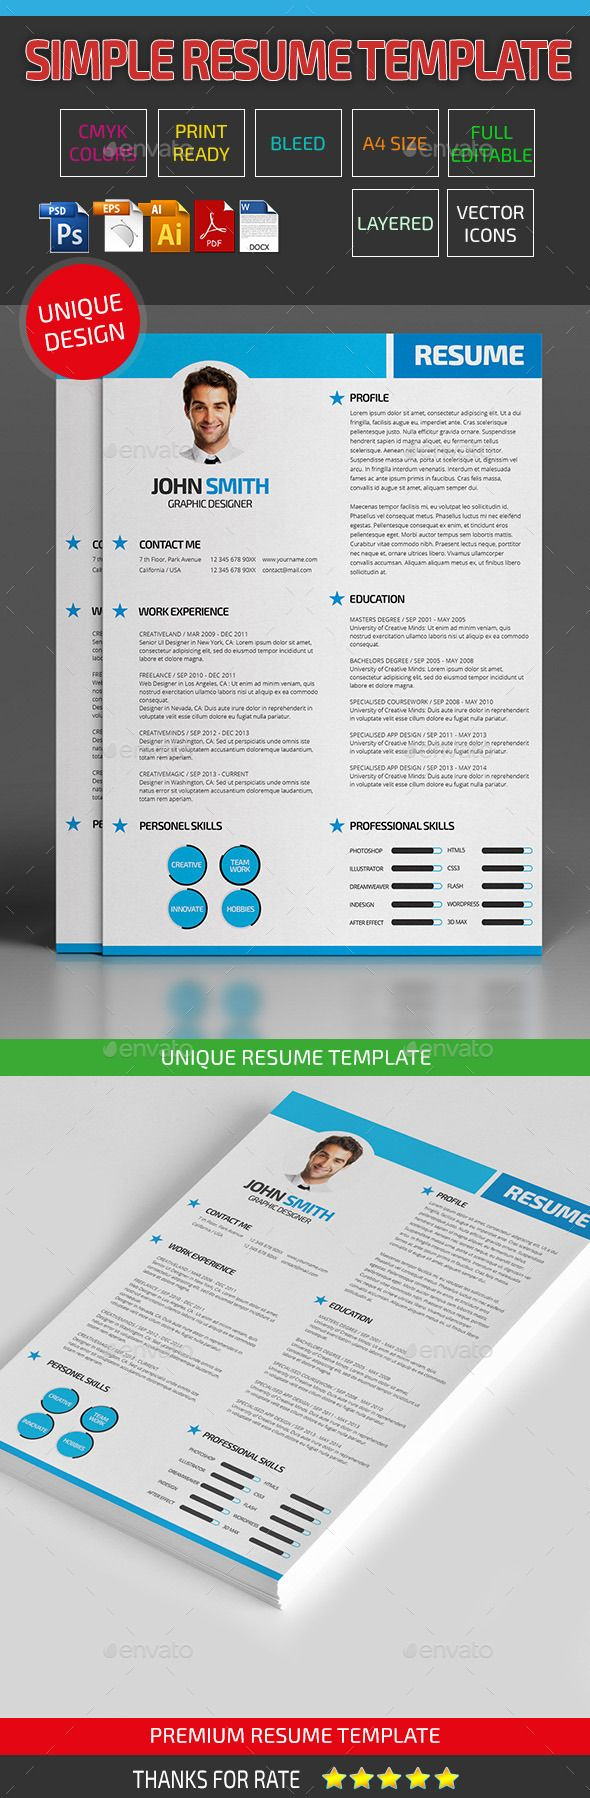 Simple Resume Template 19 102 best 06 RESUME